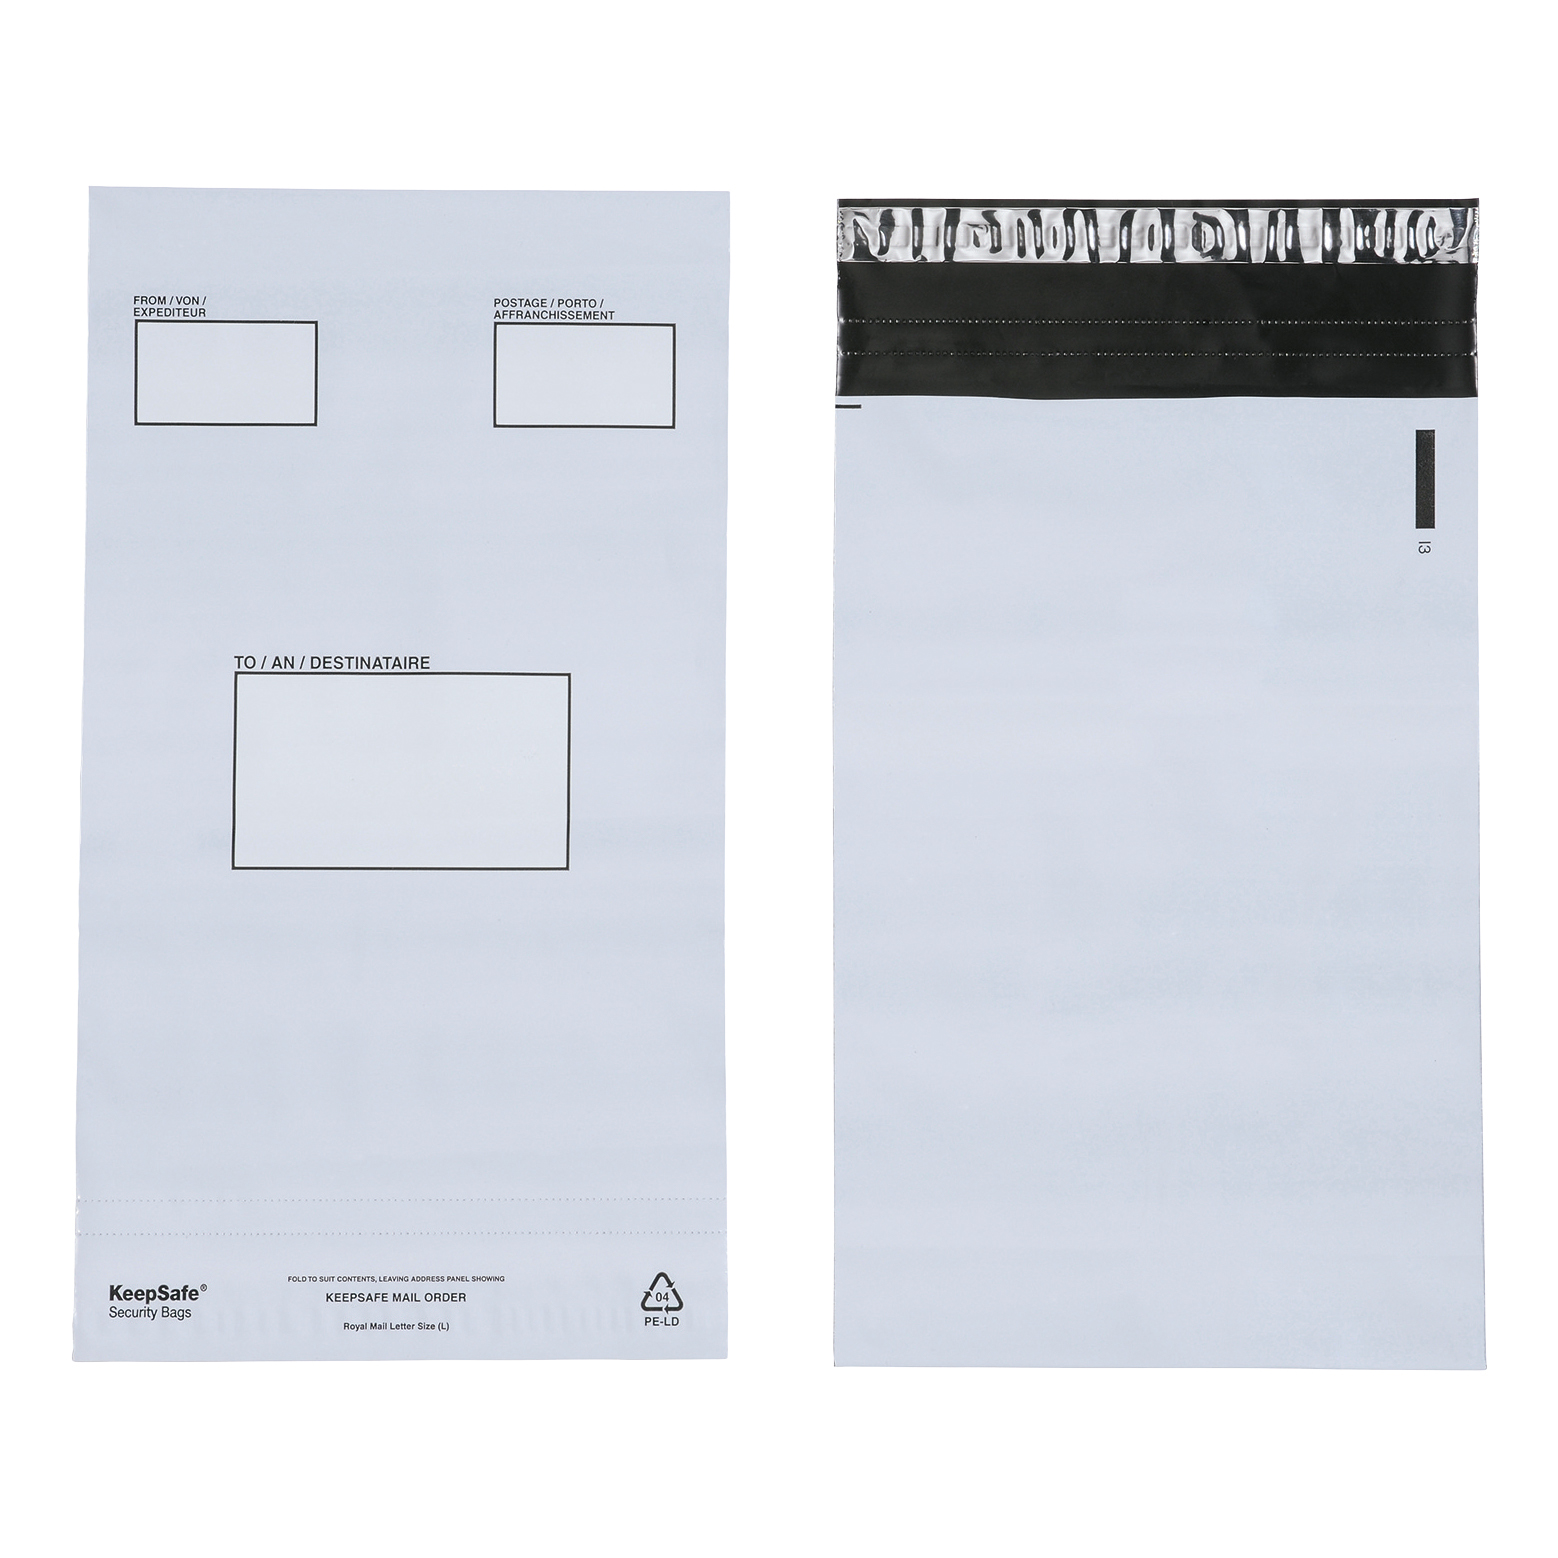 Polythene Envelopes Keepsafe Envelope Extra Strong Polythene Opaque C5 W165xH240mm Peel & Seal Ref KSV-MO1 [Box 100]